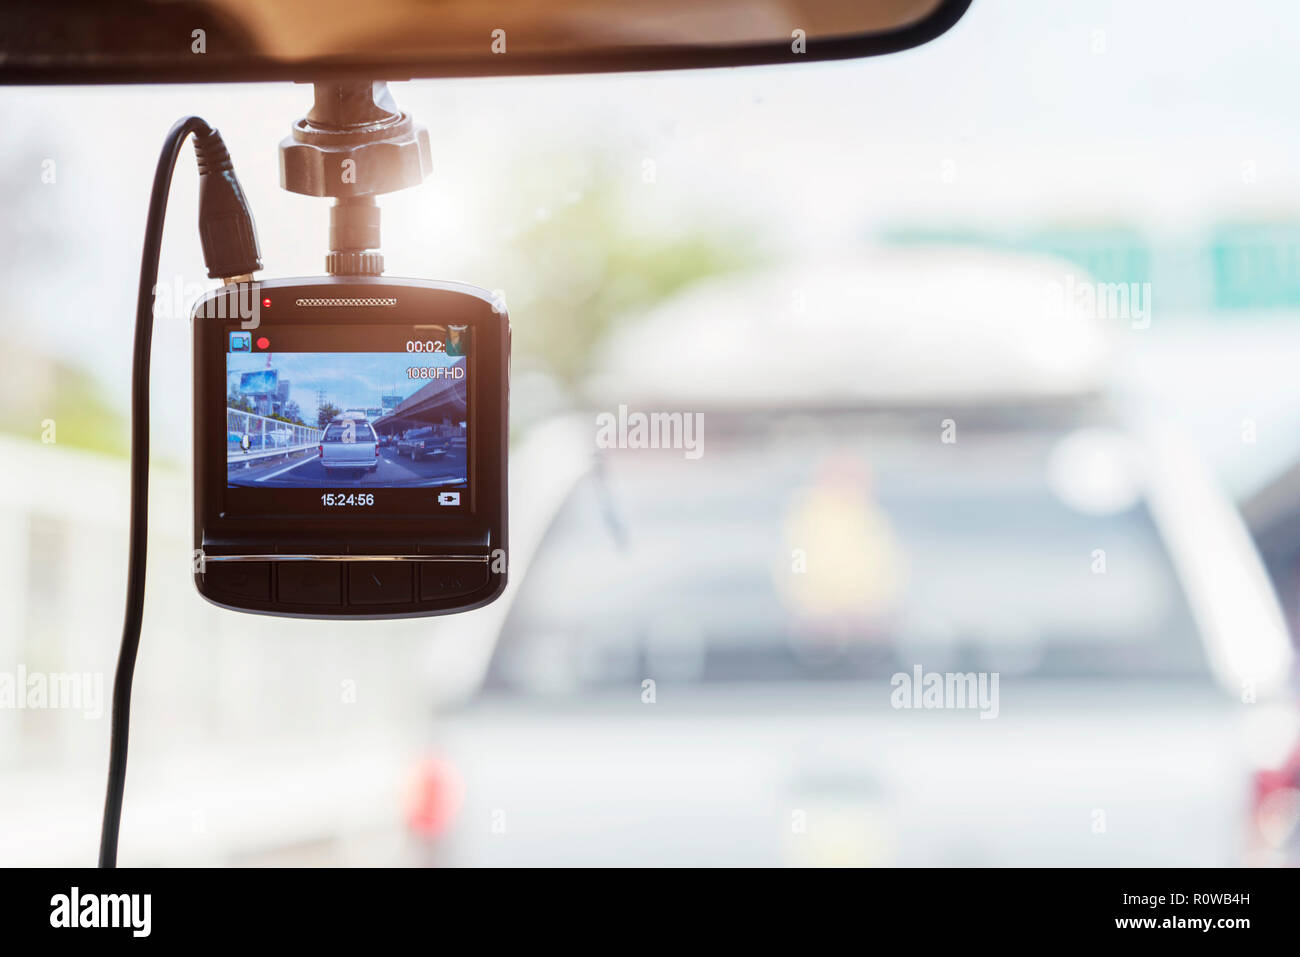 Recorder camera in front of car for safety on the road. - Stock Image